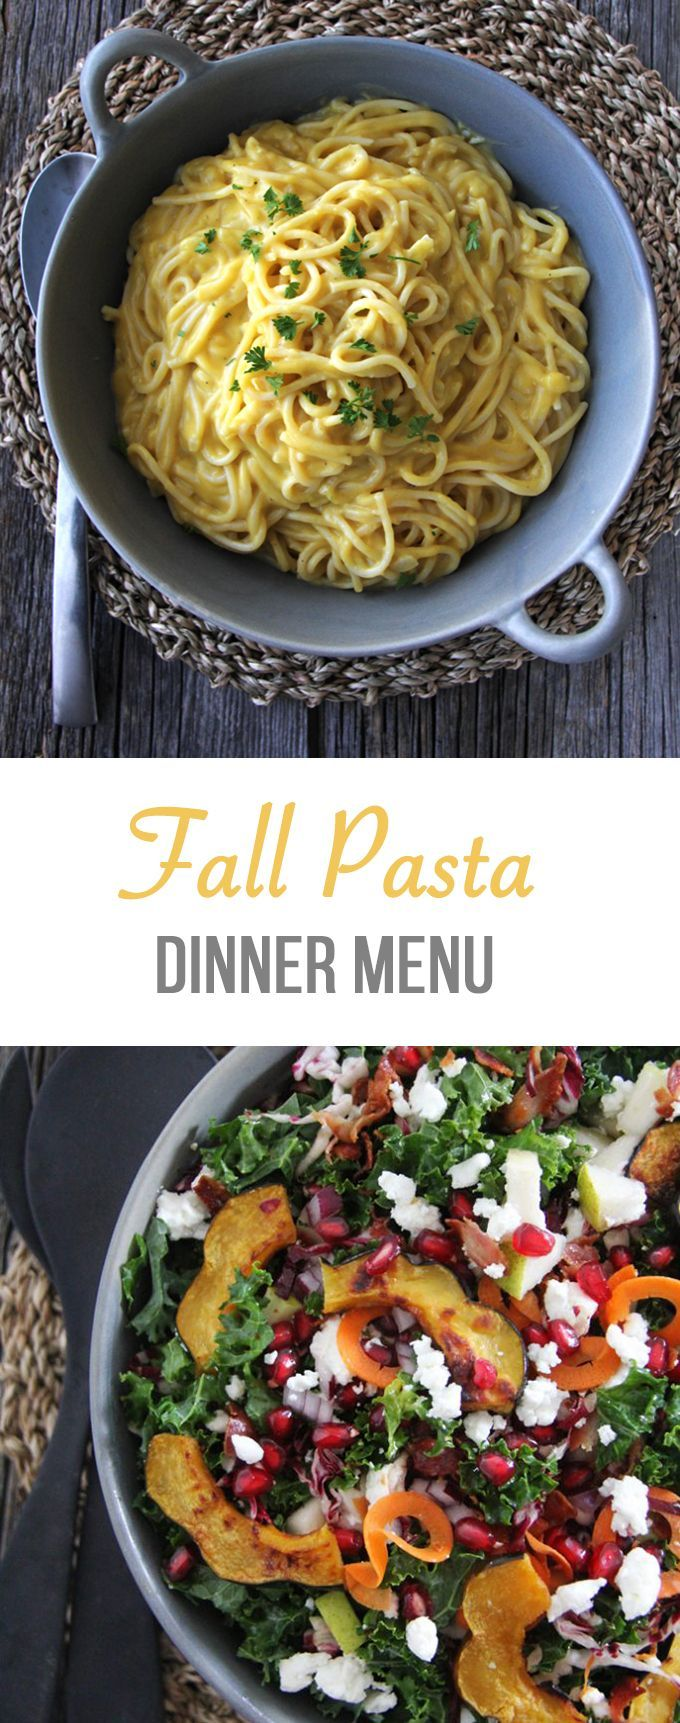 What's For Dinner?  A Fall Pasta Menu